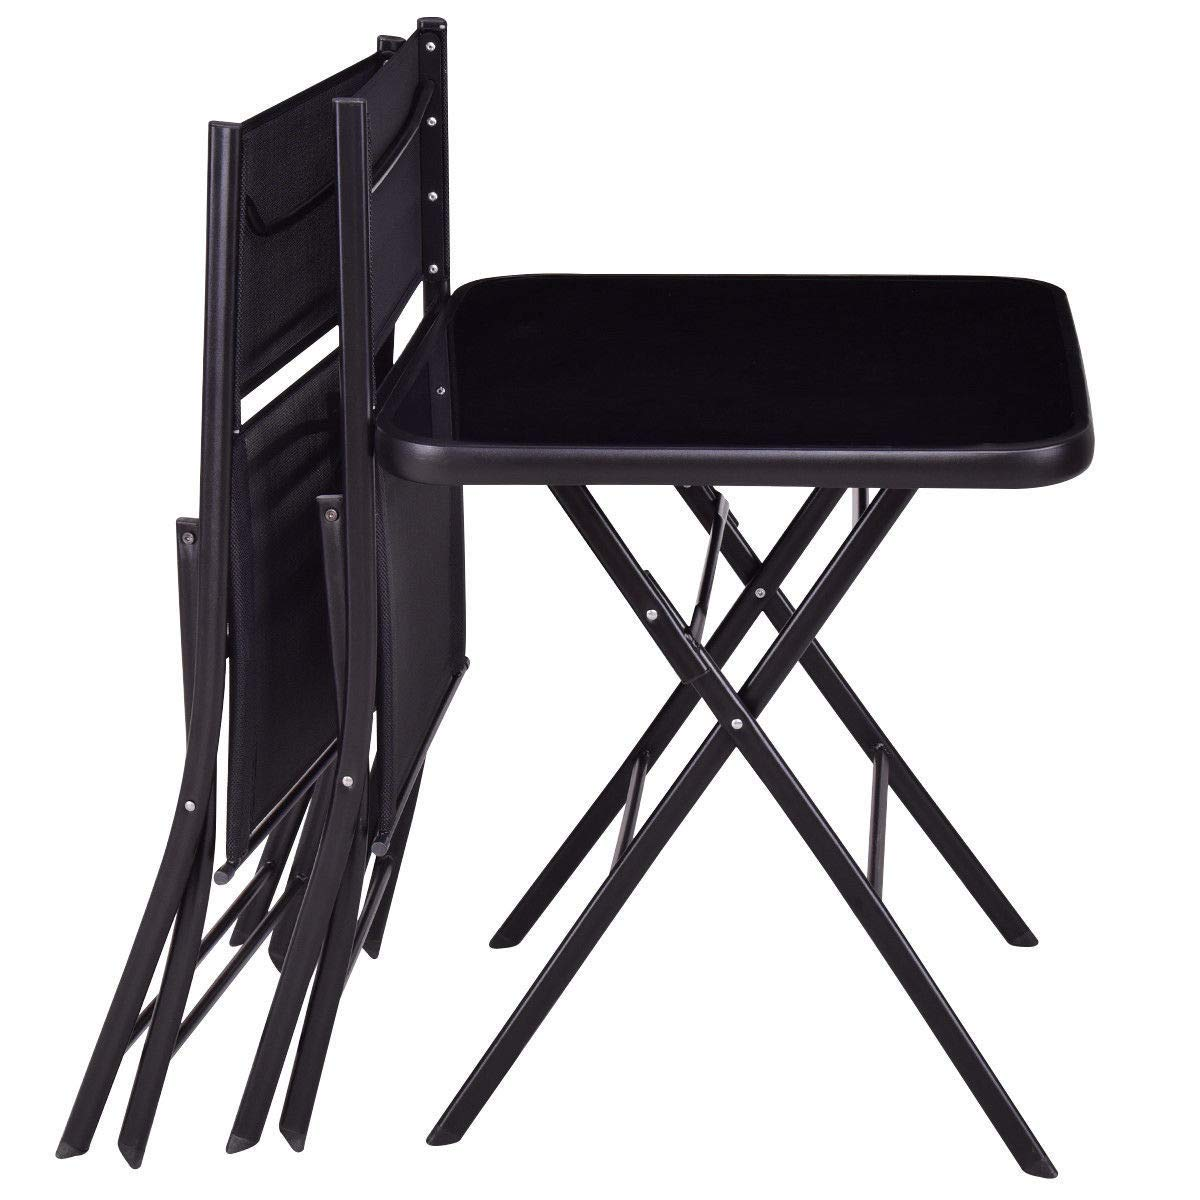 GHP Set of 3 Black Steel Textile Fiber & Tempered Glass Top Folding Table w 2-Pcs Chairs by Globe House Products (Image #3)